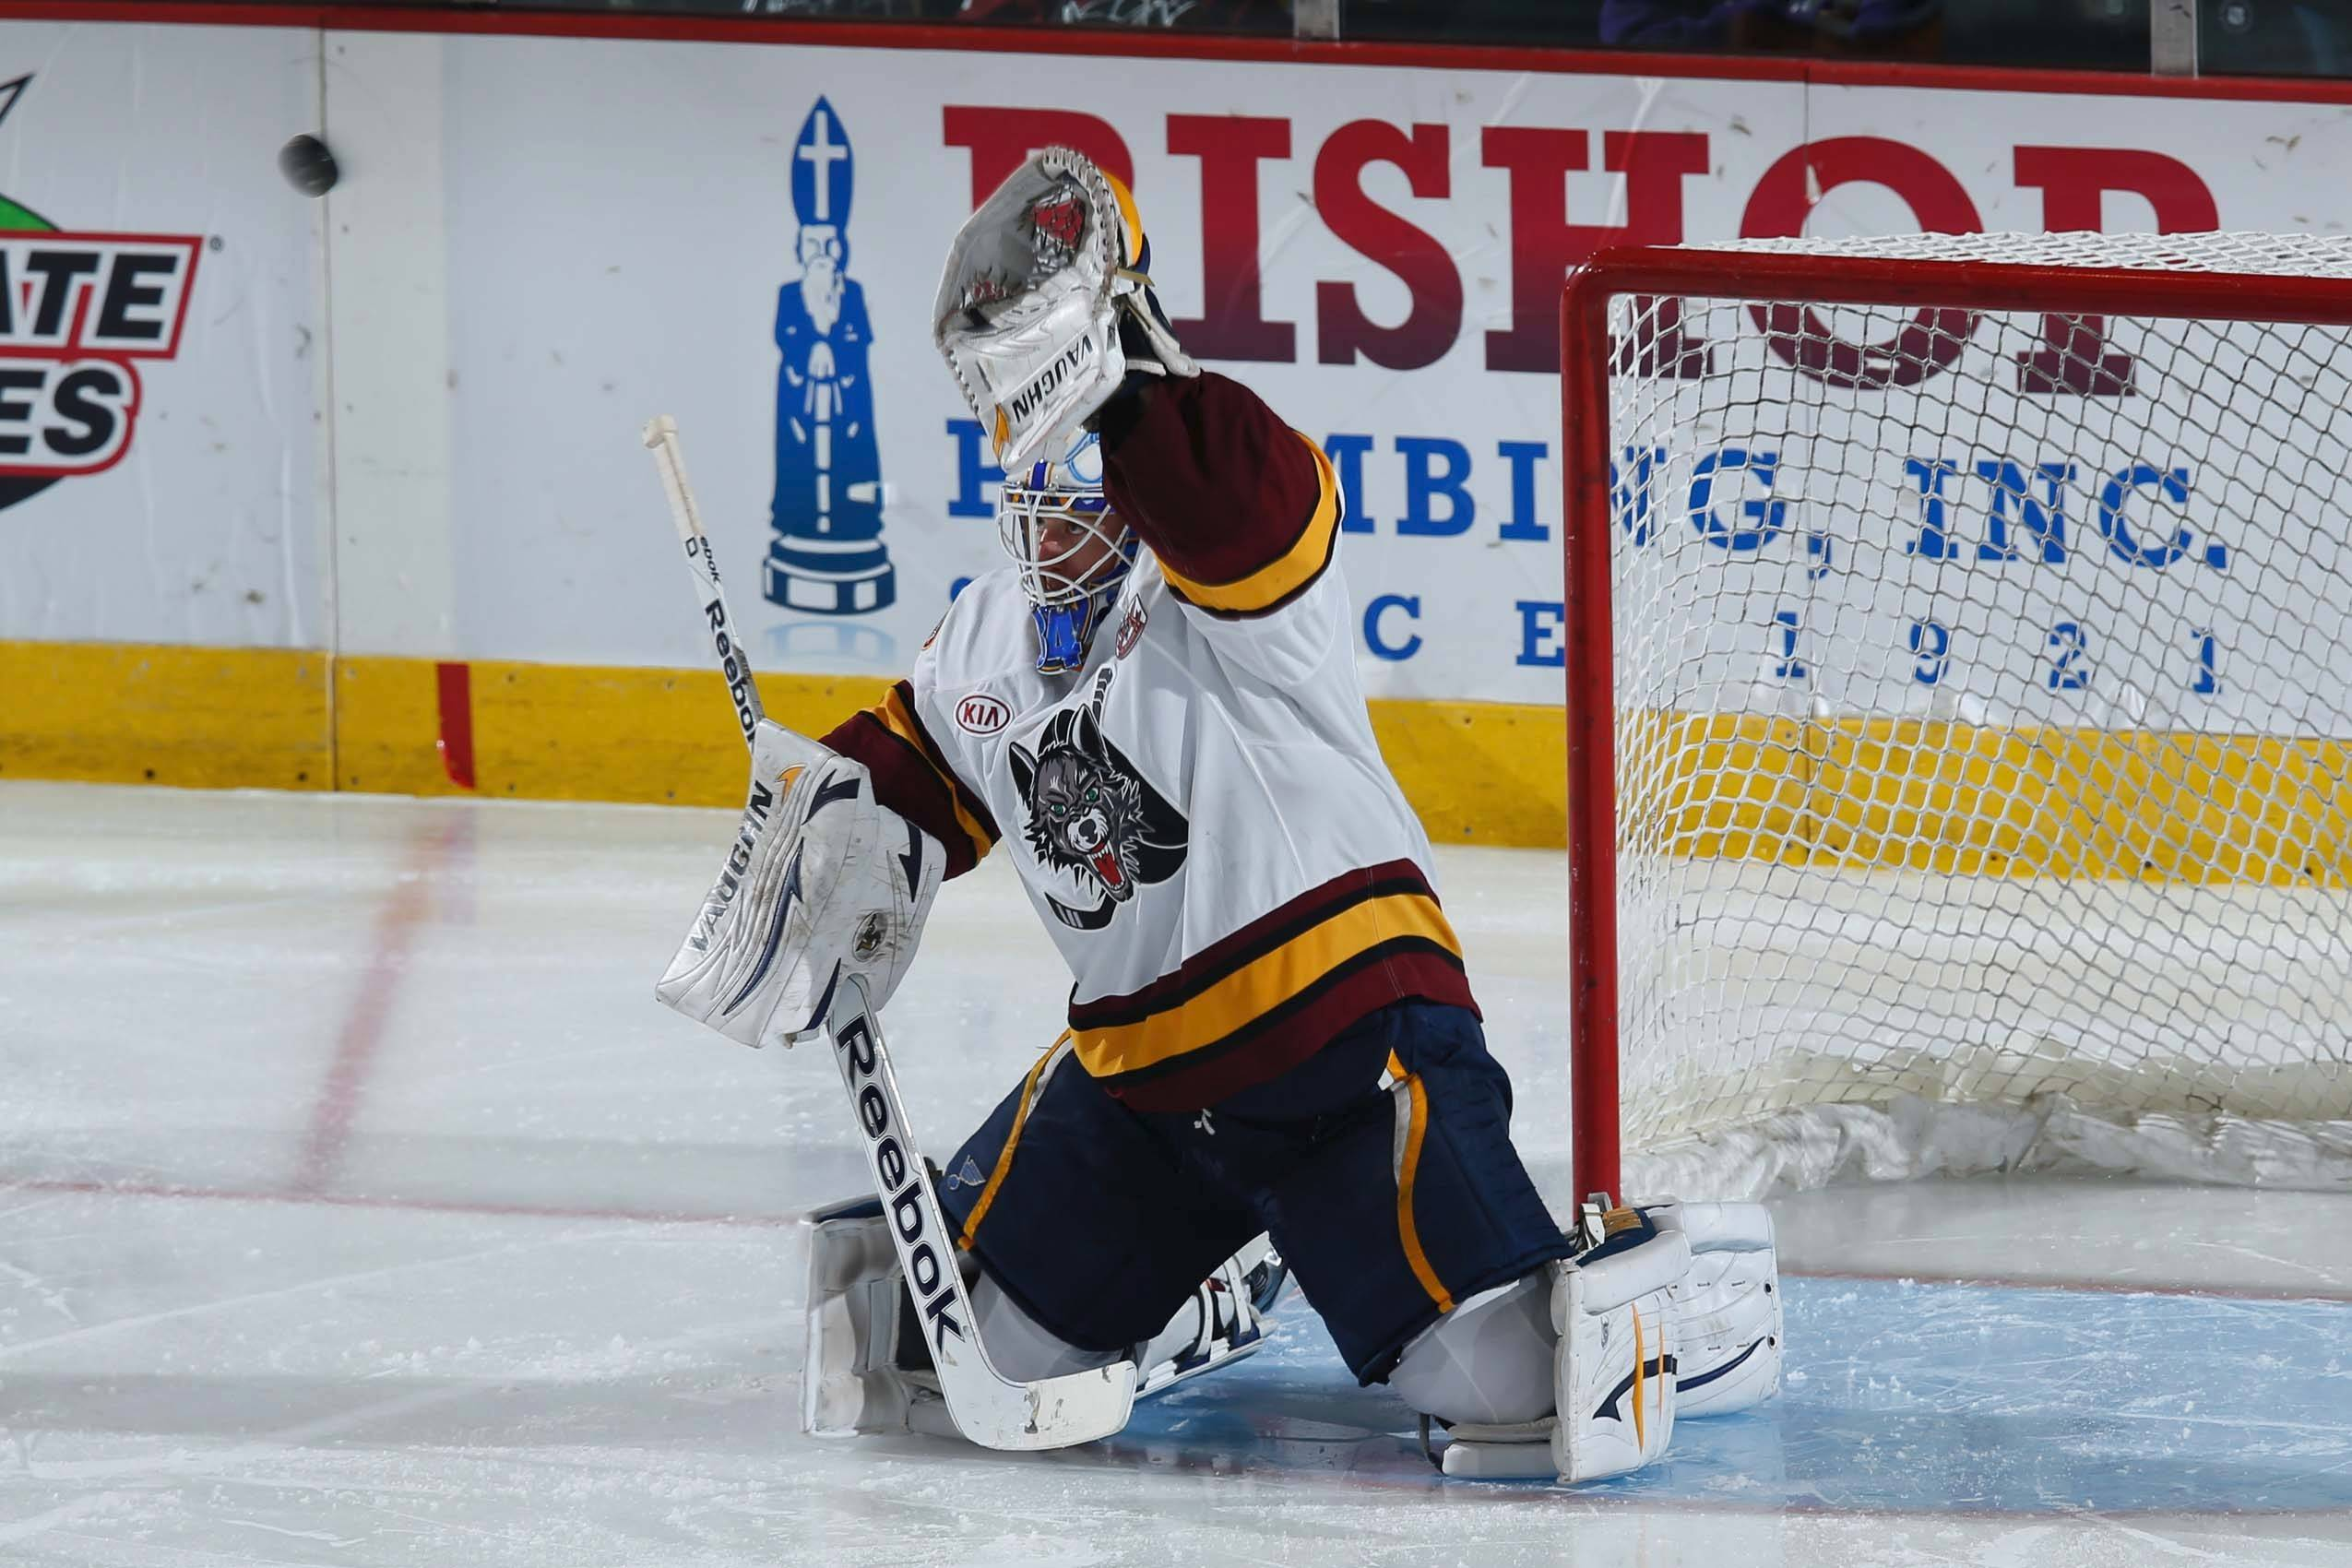 Chicago Wolves goaltender Jake Allen finished No. 1 in each of the top three categories among AHL goalies.